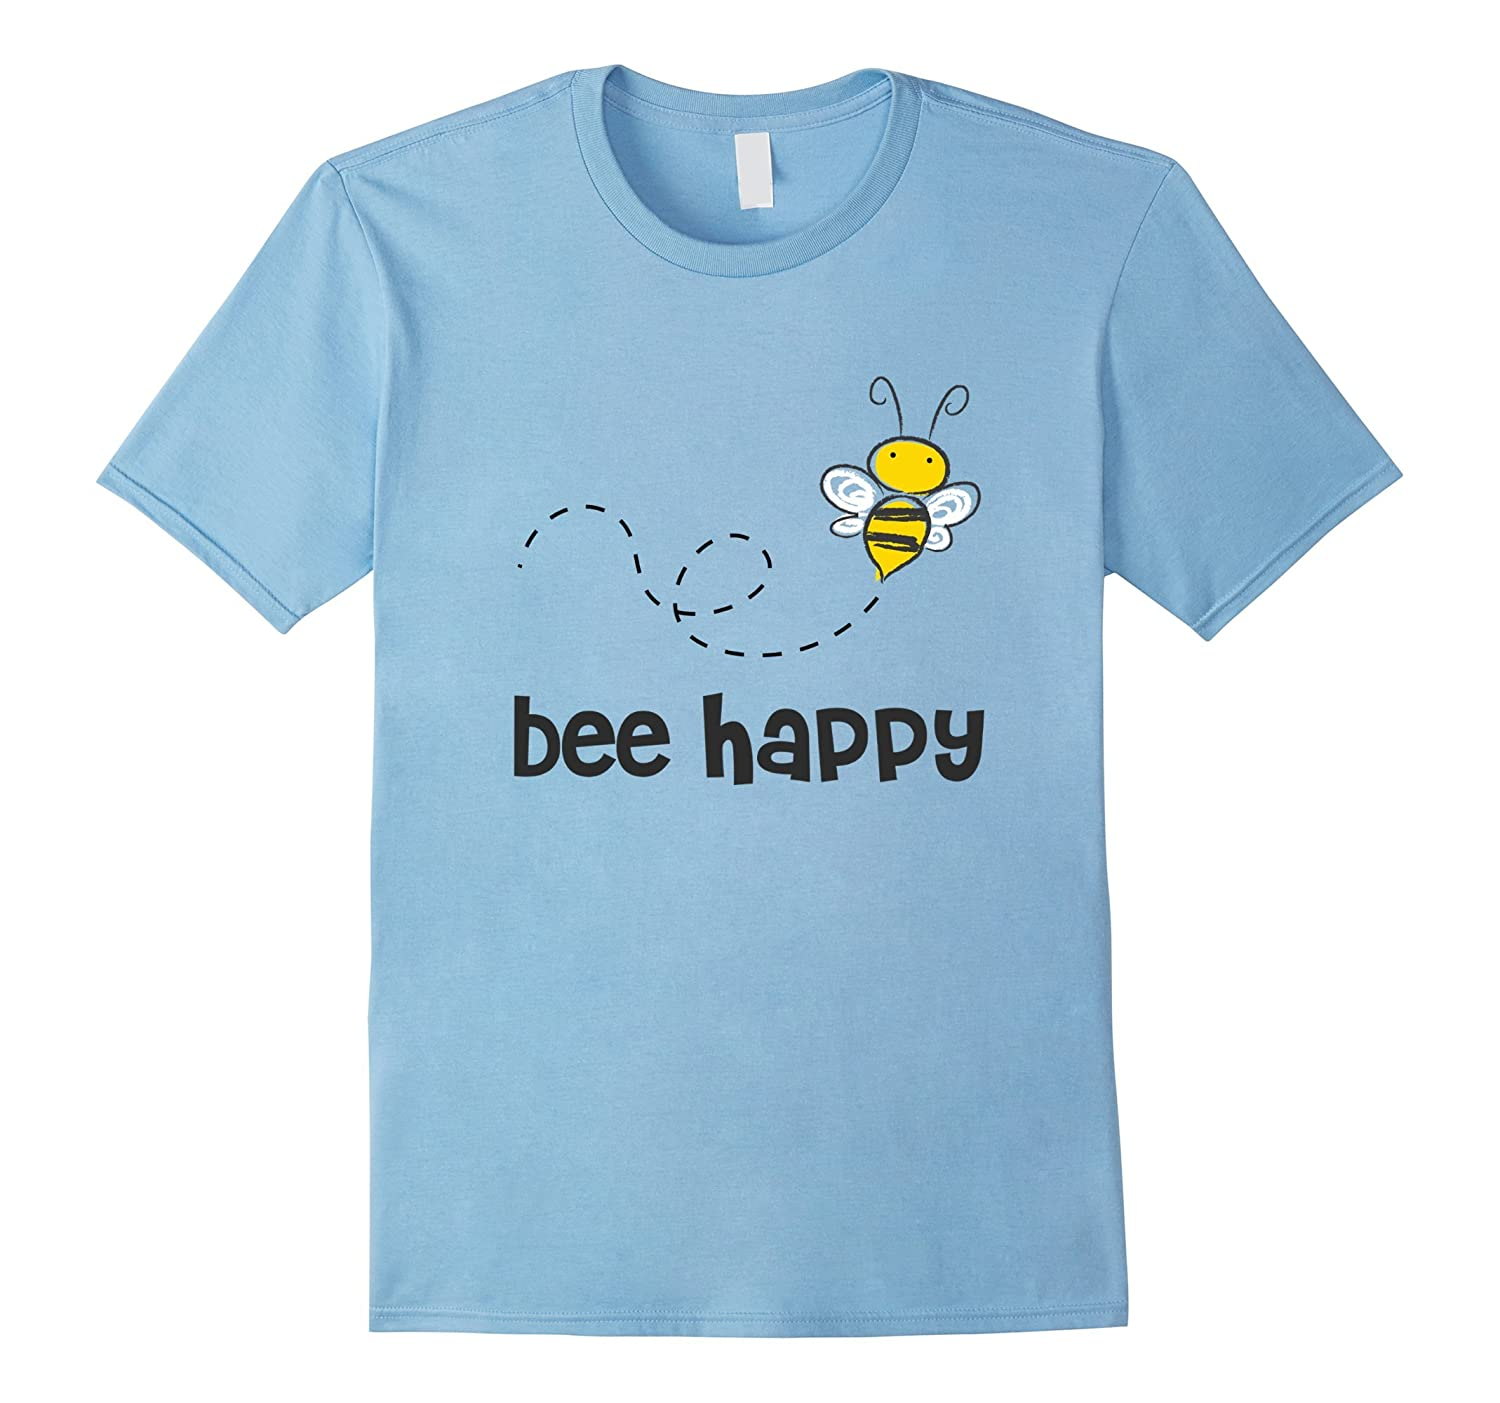 Bee Happy Shirt for Beekeepers and Lovers of Honey Bees-TD